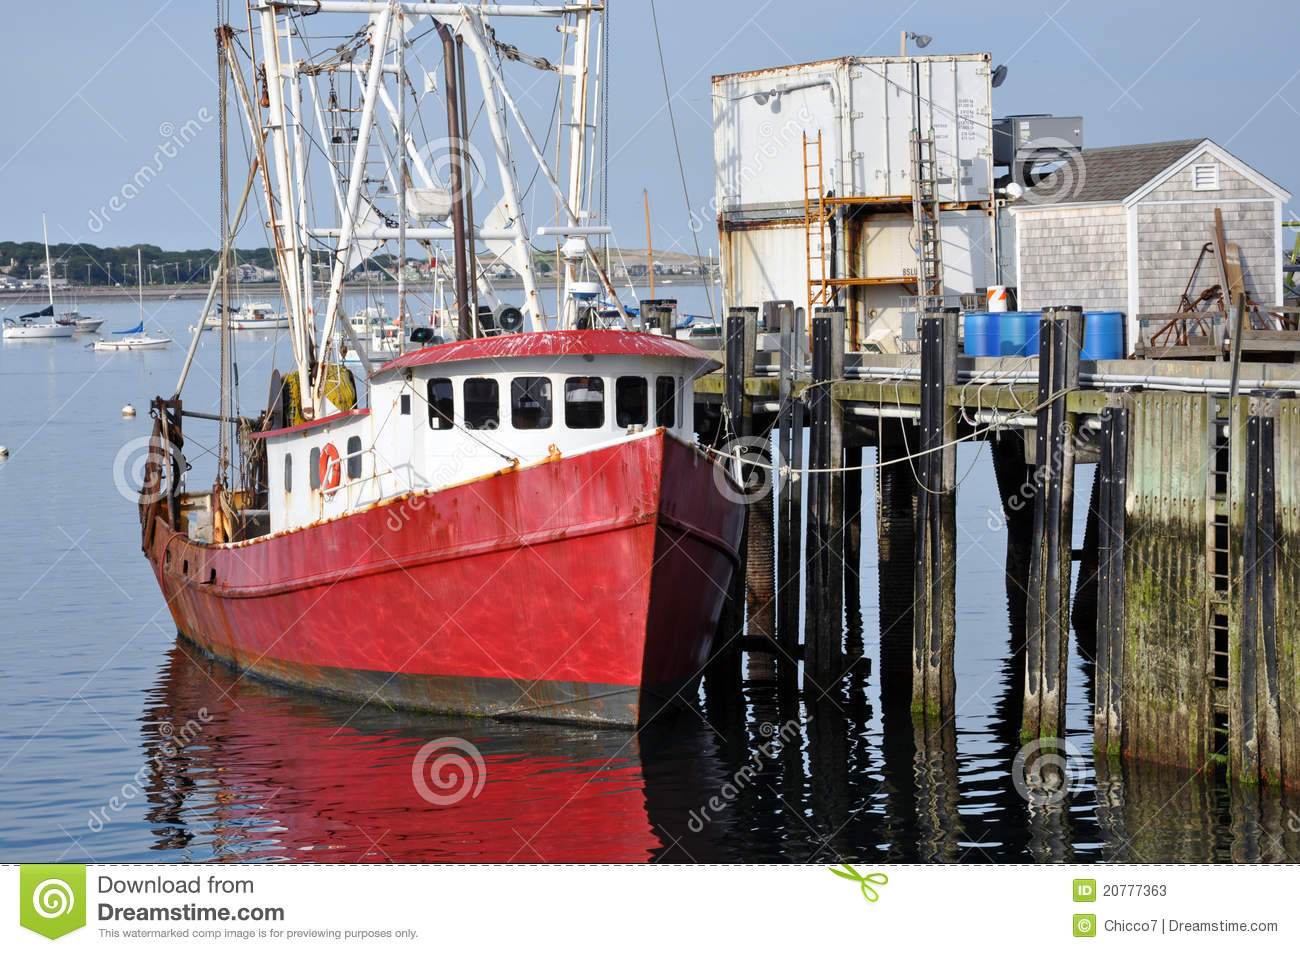 Fishing boat at the dock stock photos image 20777363 for Mass commercial fishing license